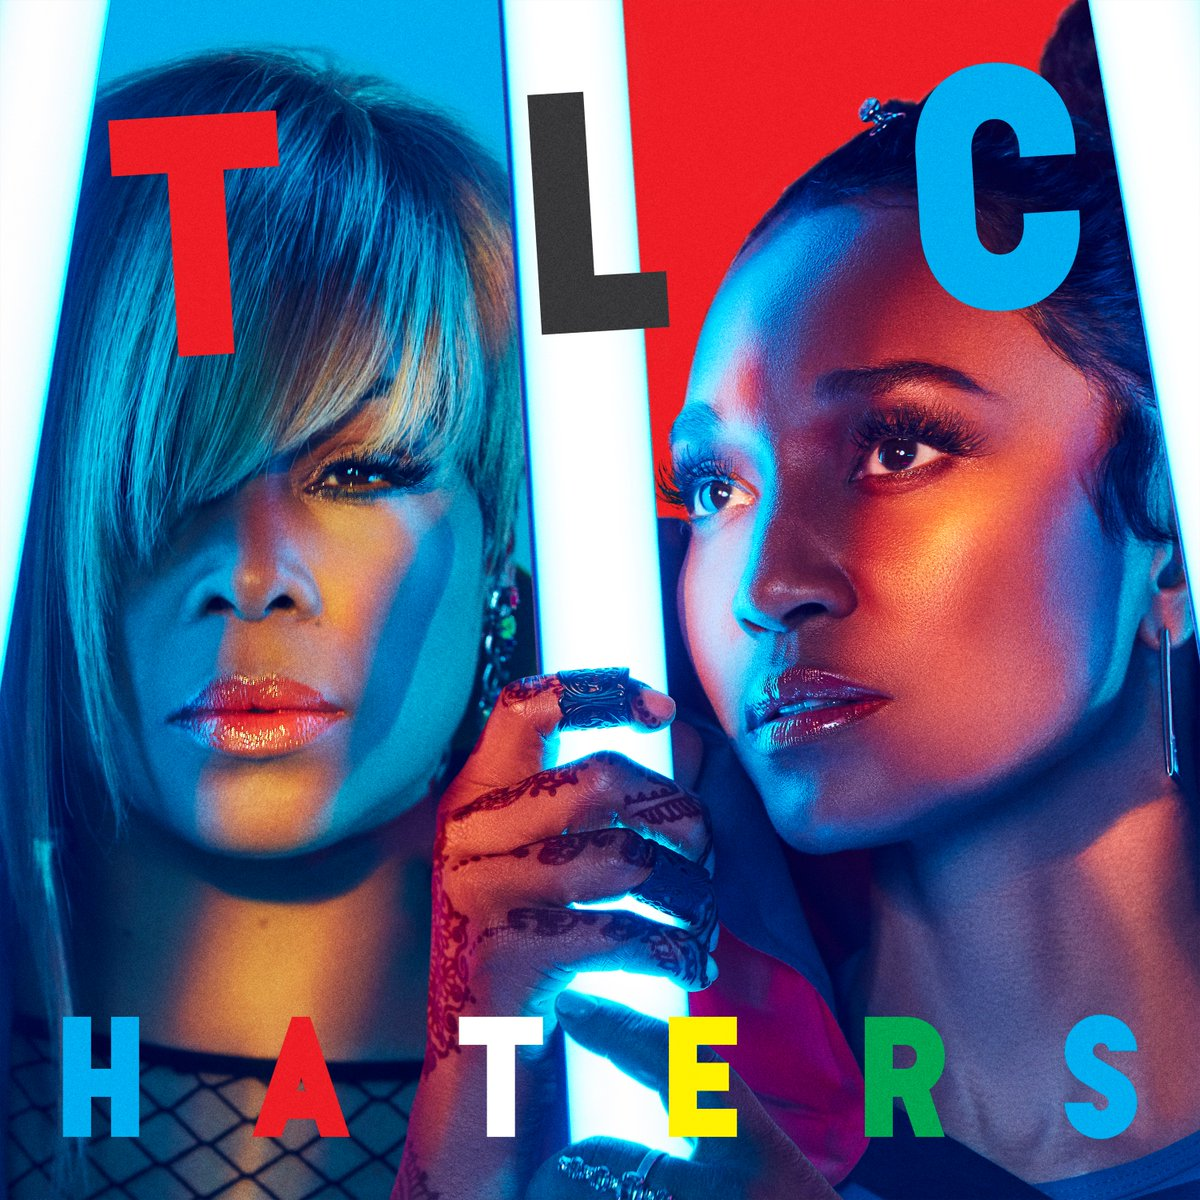 Tlc - Haters album cover